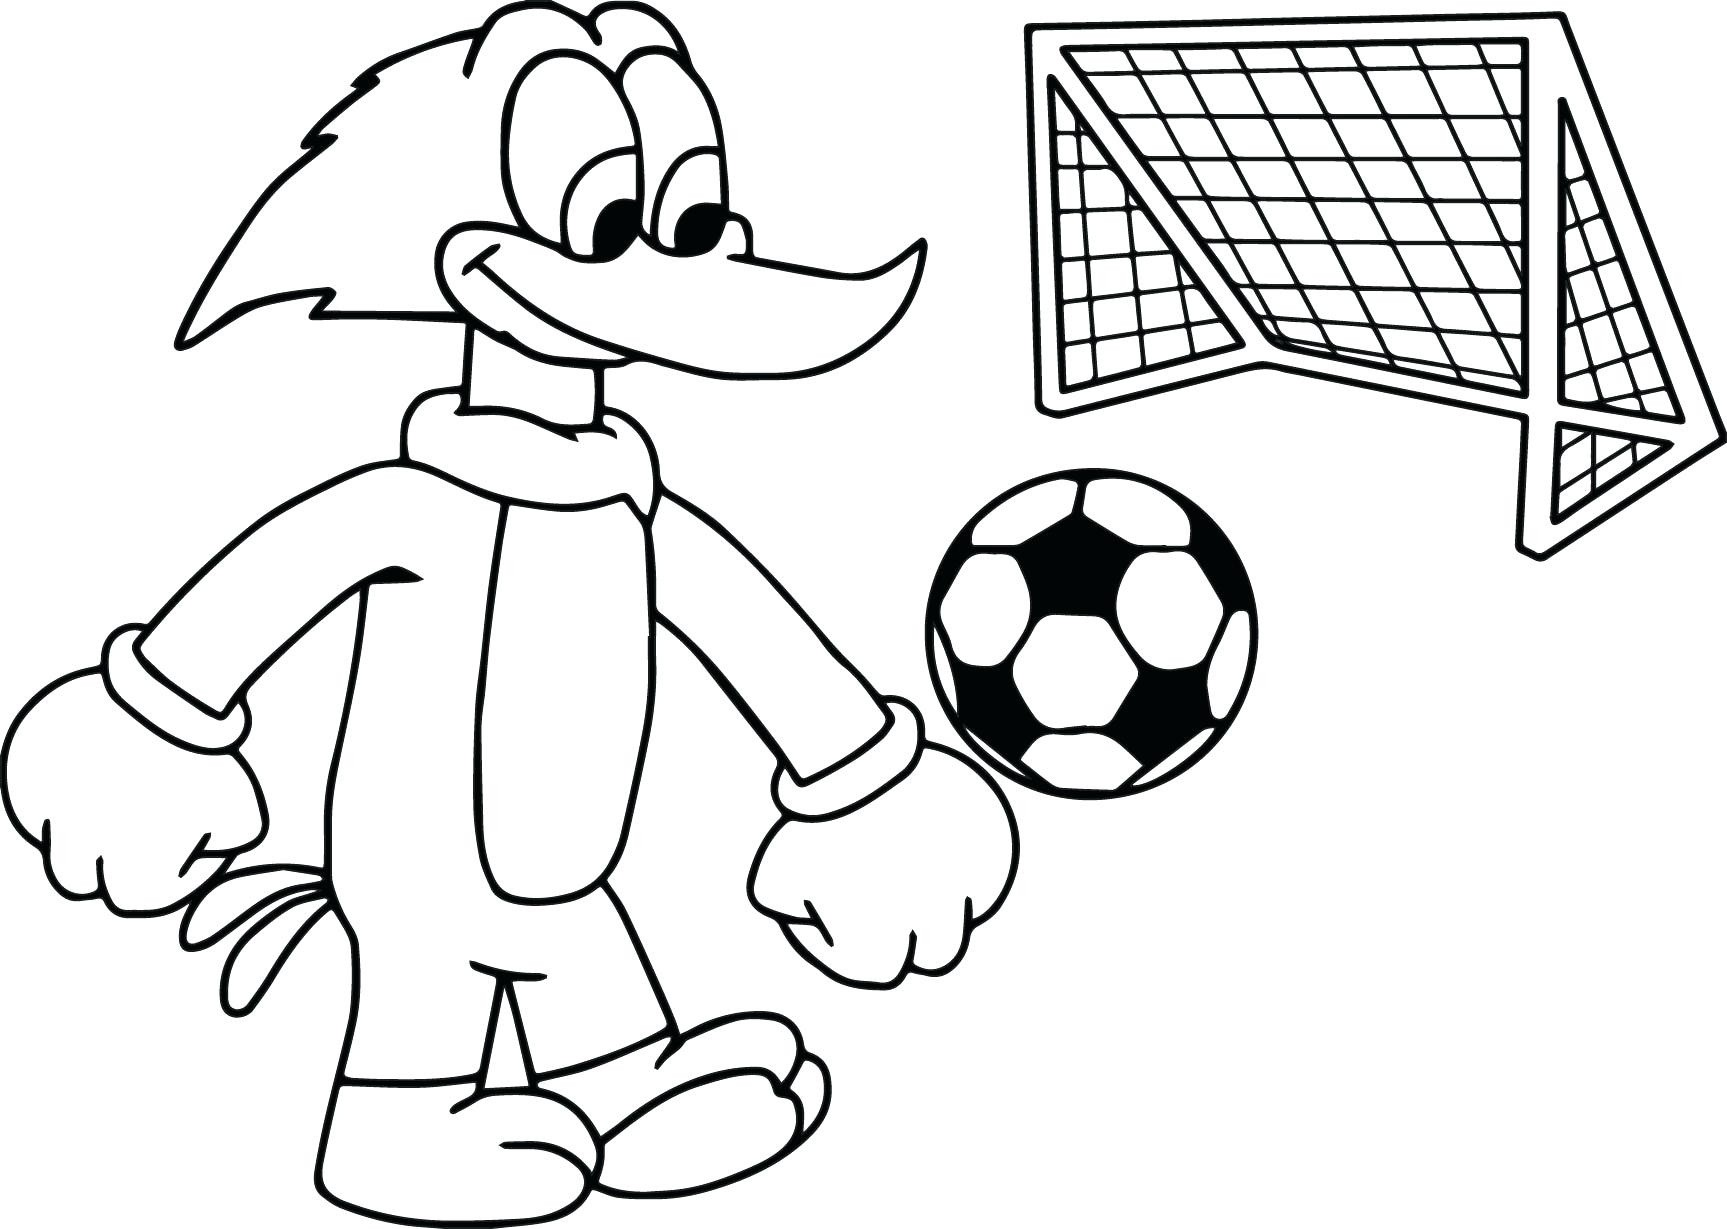 Soccer Drawing at GetDrawings.com | Free for personal use Soccer ...